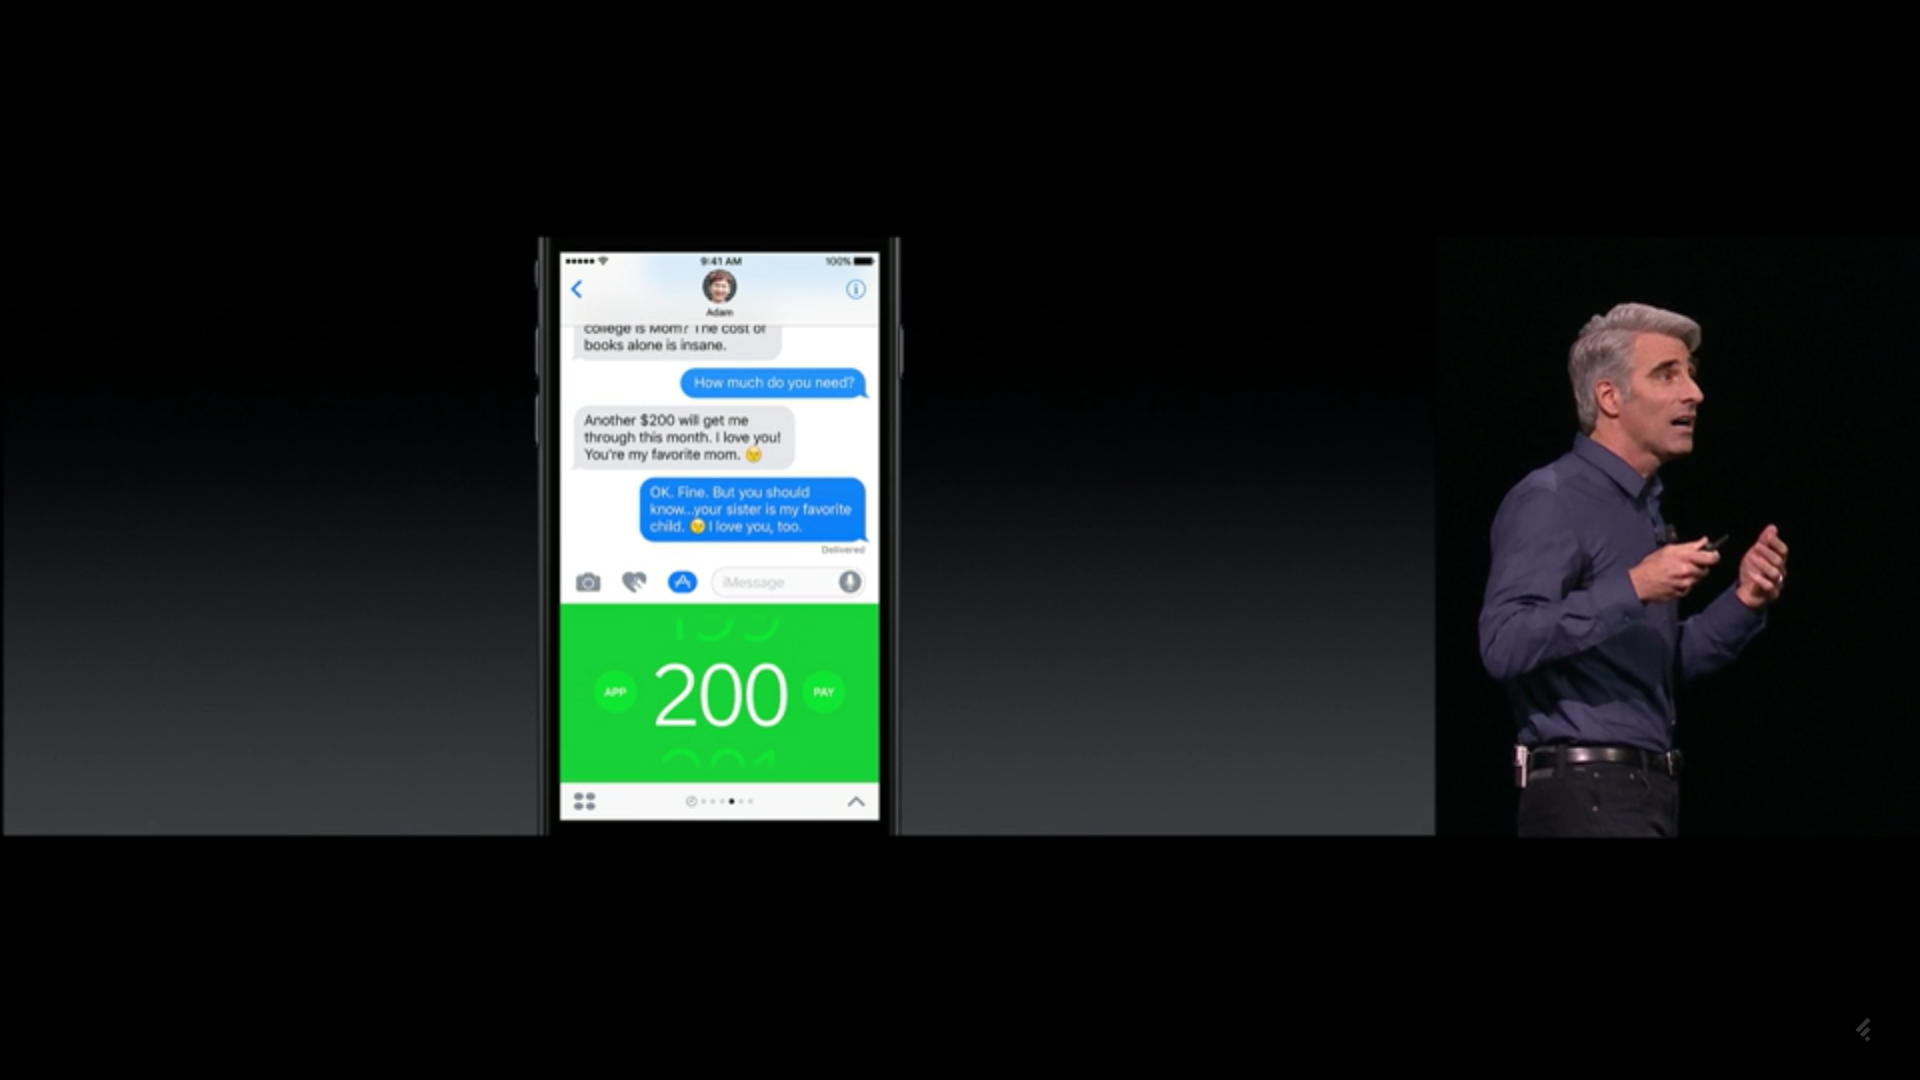 The Square Cash iMessage App for Messages in iOS 10.